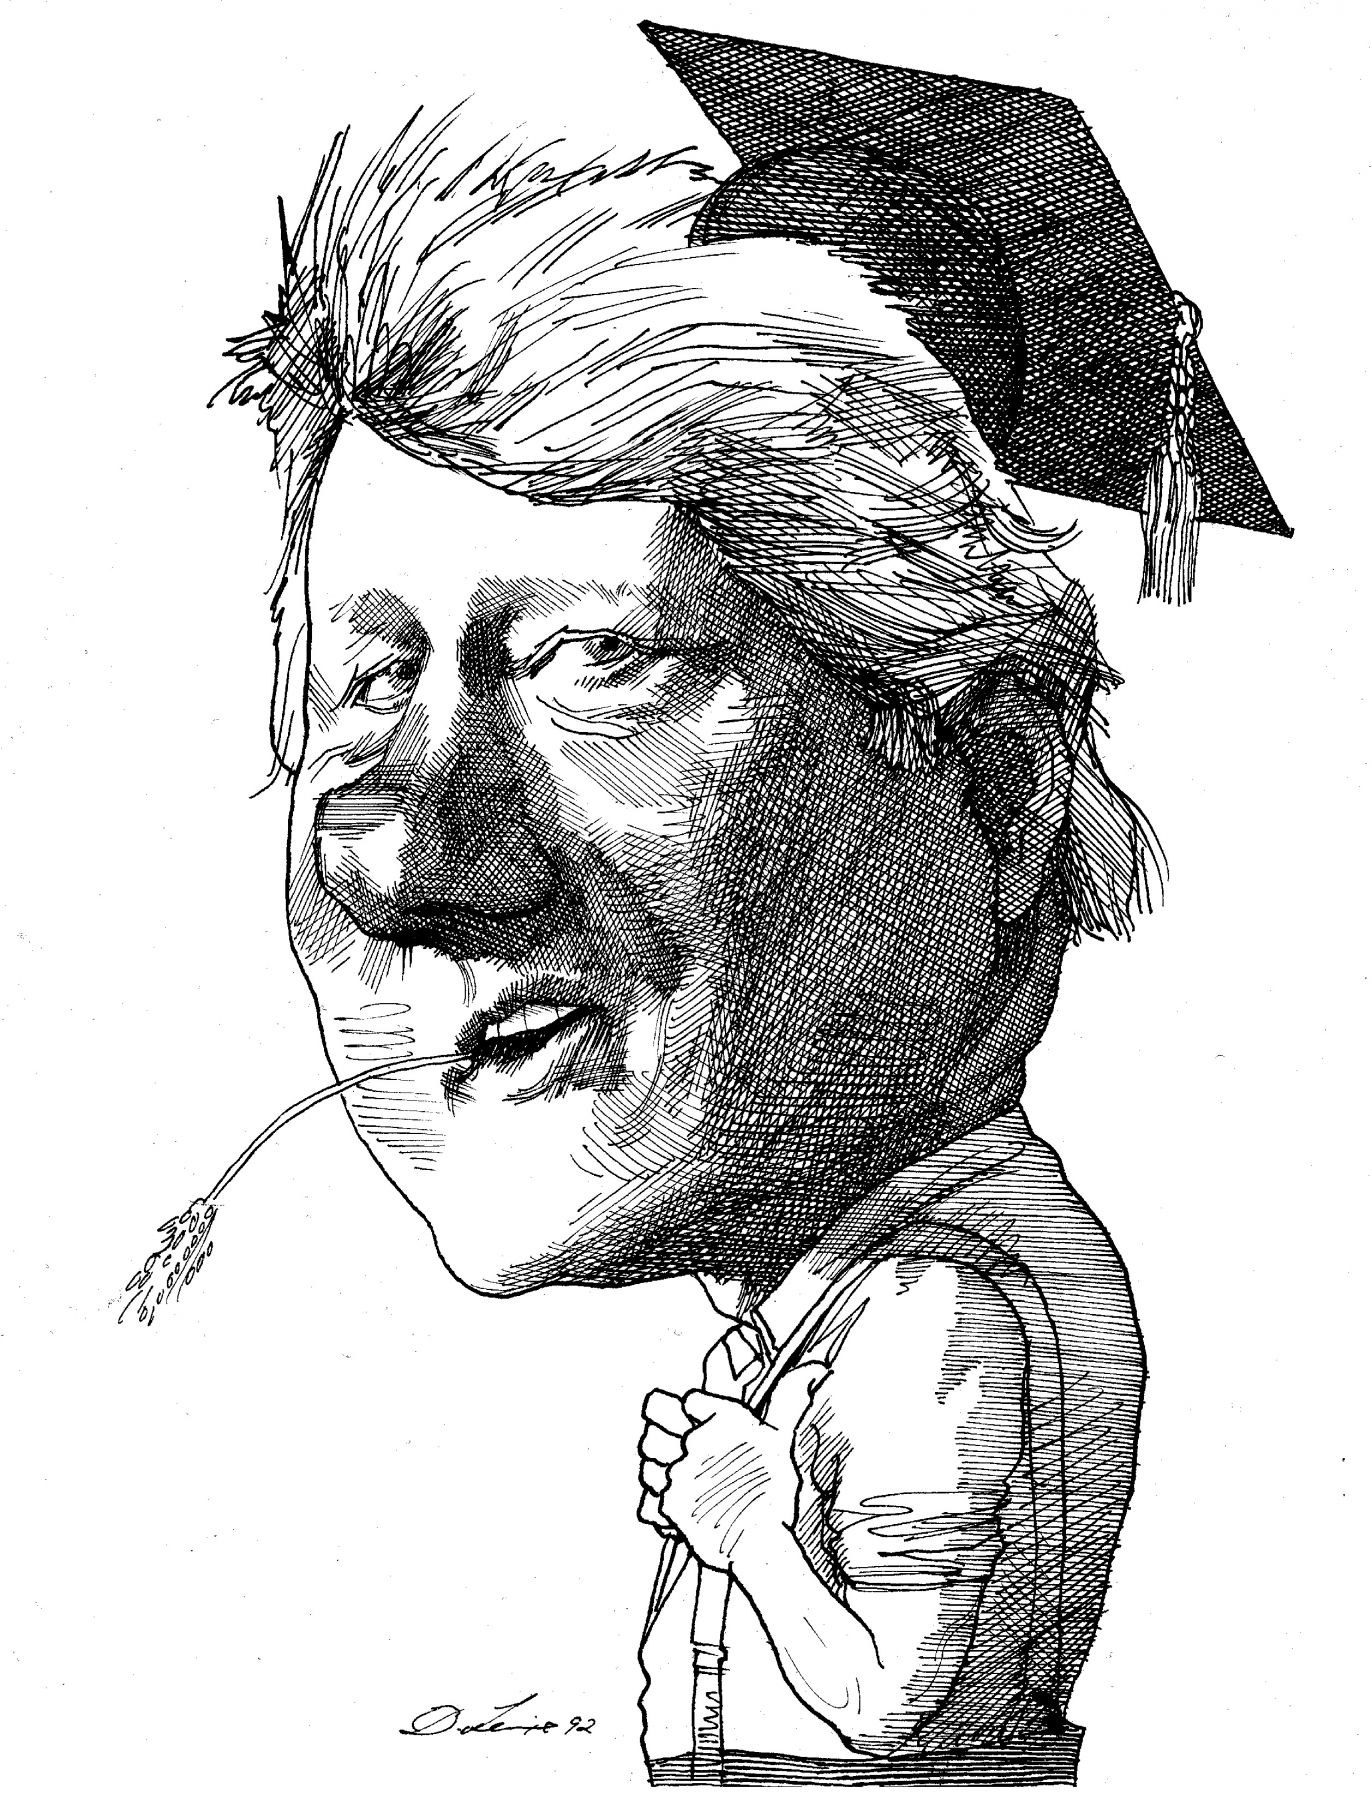 David Levine, Bill Clinton, 1992, ink on paper, 13 3/4 x 11 inches